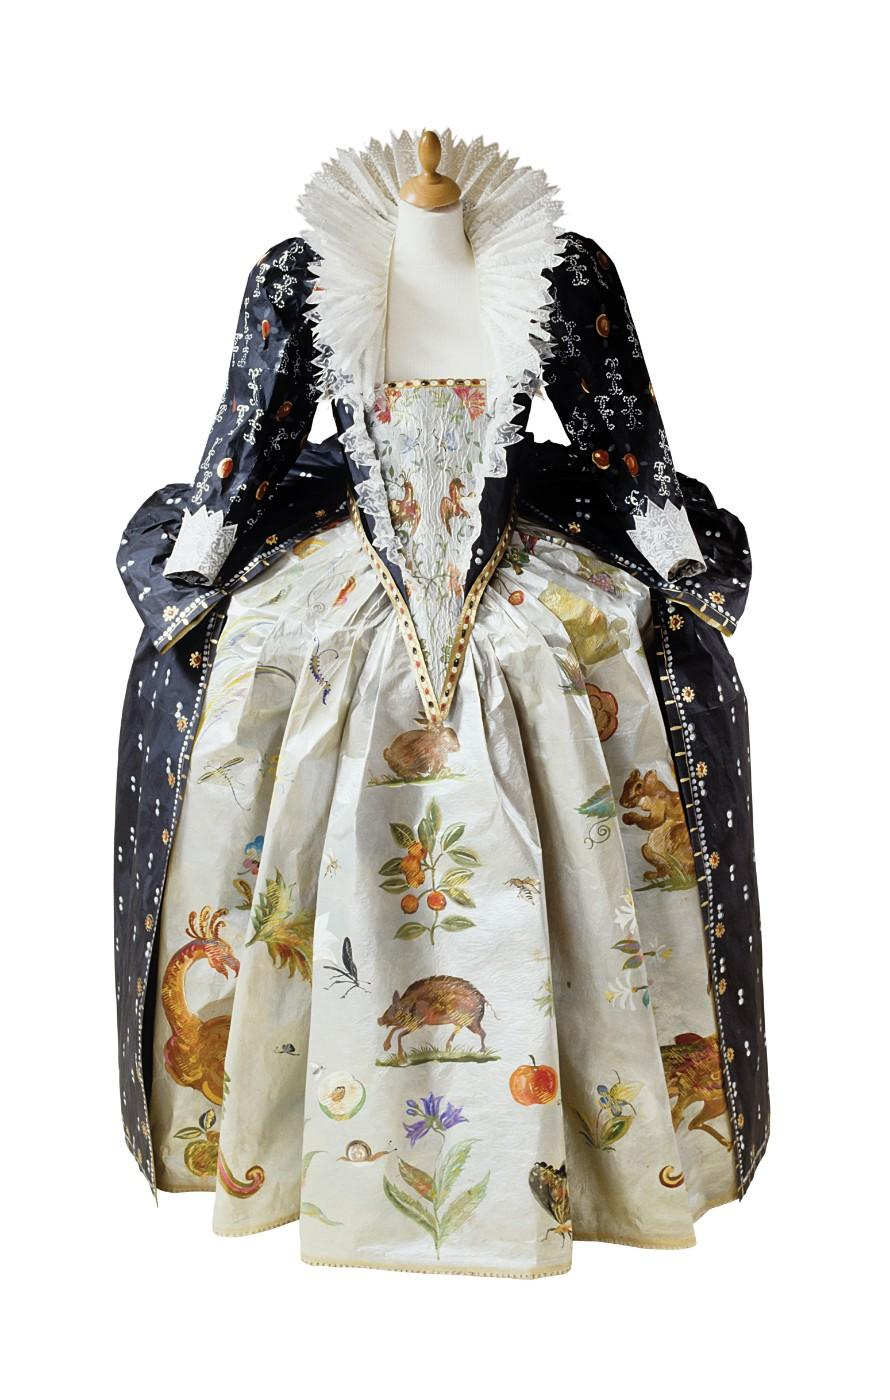 Isabelle de Borchgrave, Elizabeth I Court Dress, 2001